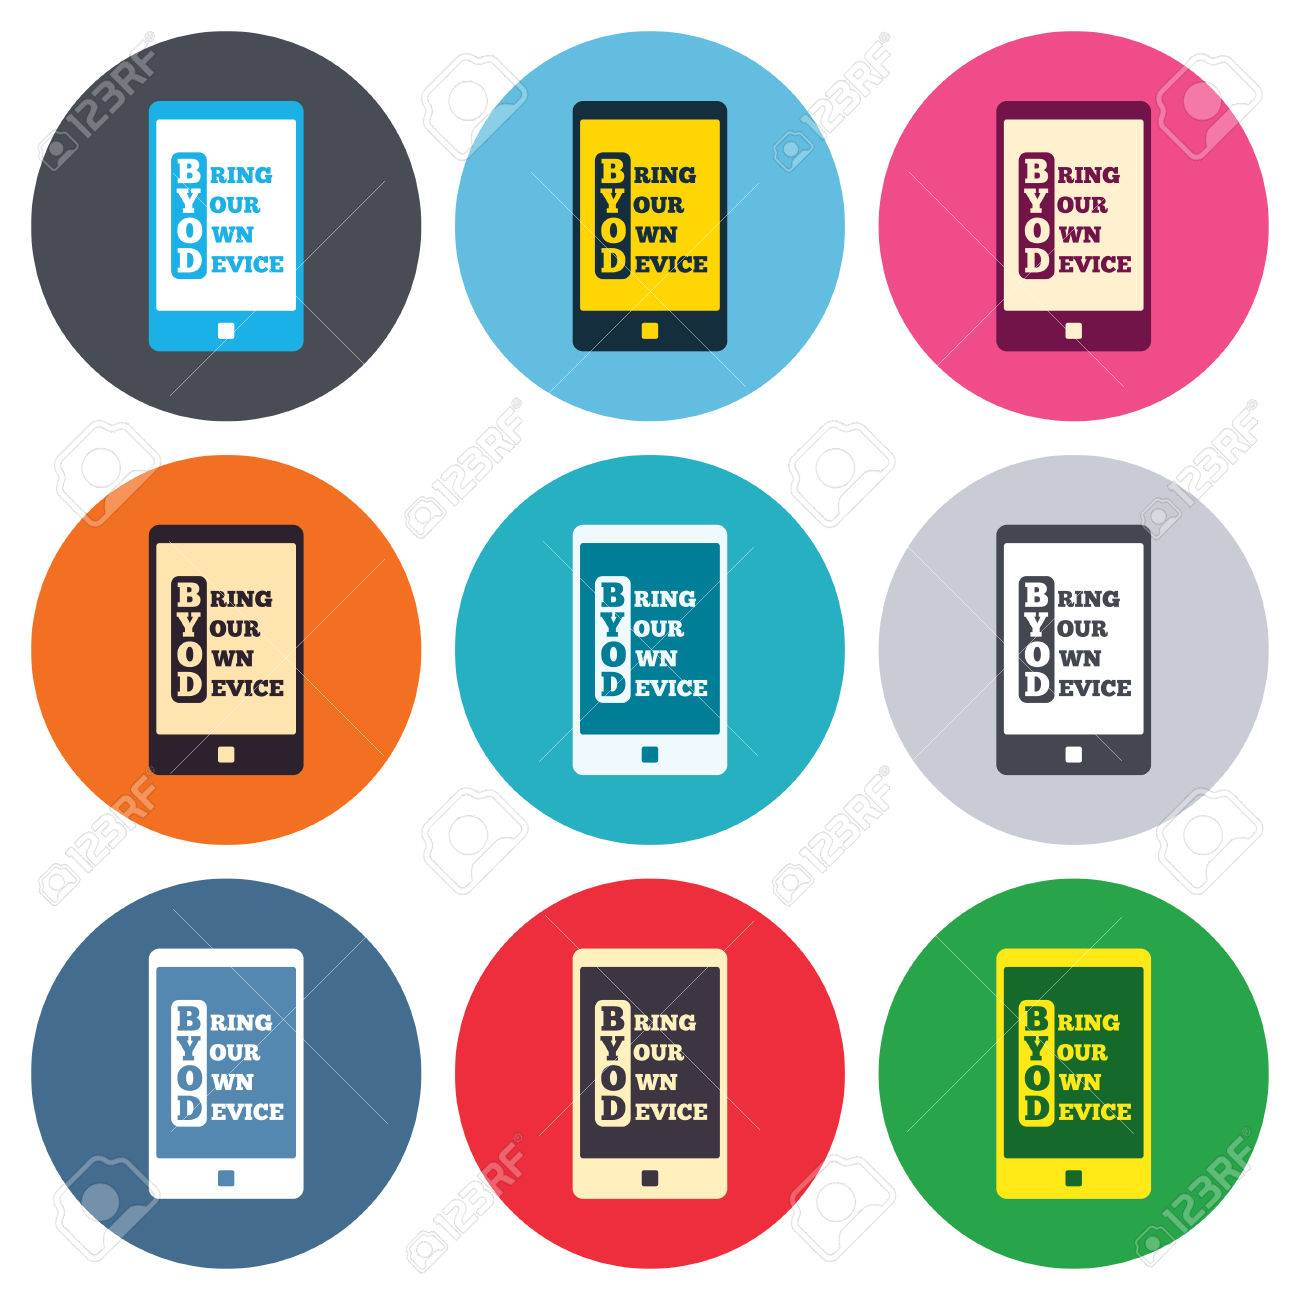 Byod sign icon bring your own device symbol smartphone icon bring your own device symbol smartphone icon colored round buttons biocorpaavc Gallery